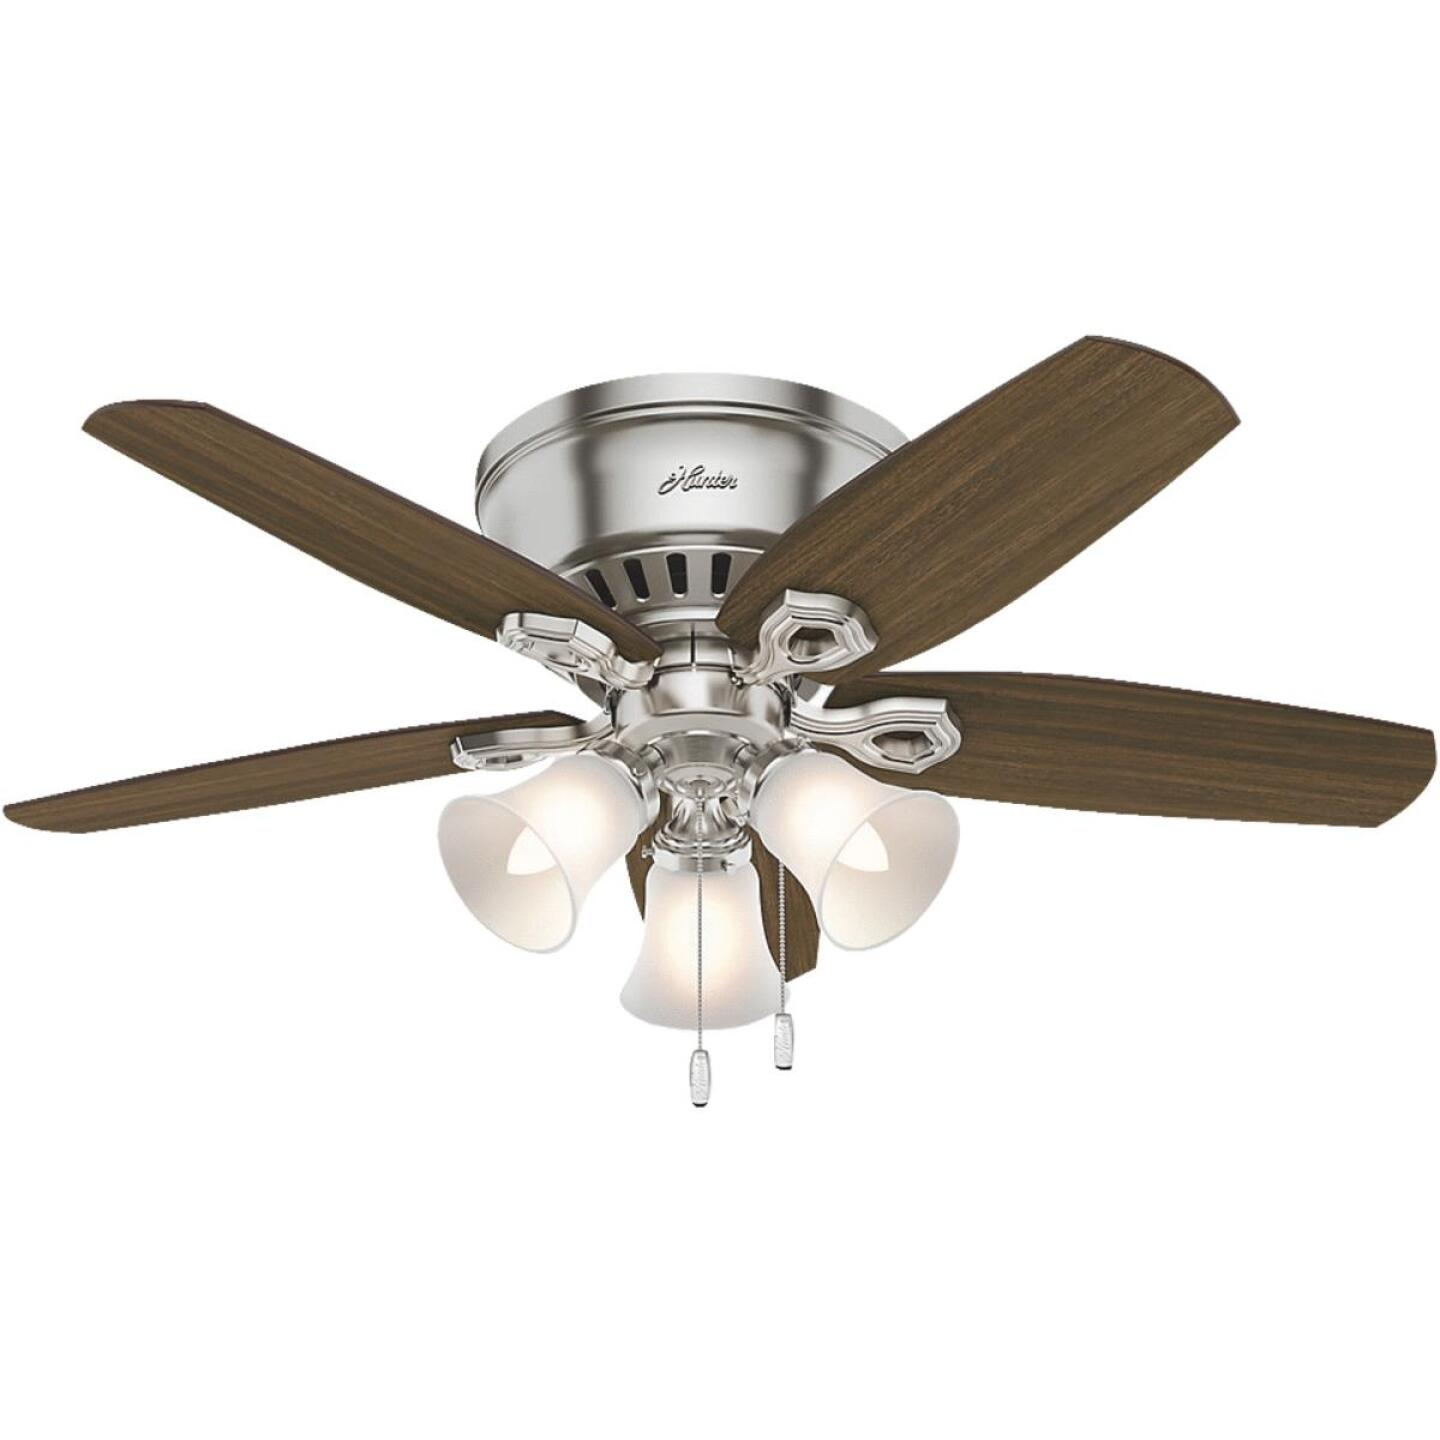 Hunter Builder Low Profile 42 In. Brushed Nickel Ceiling Fan with Light Kit Image 1